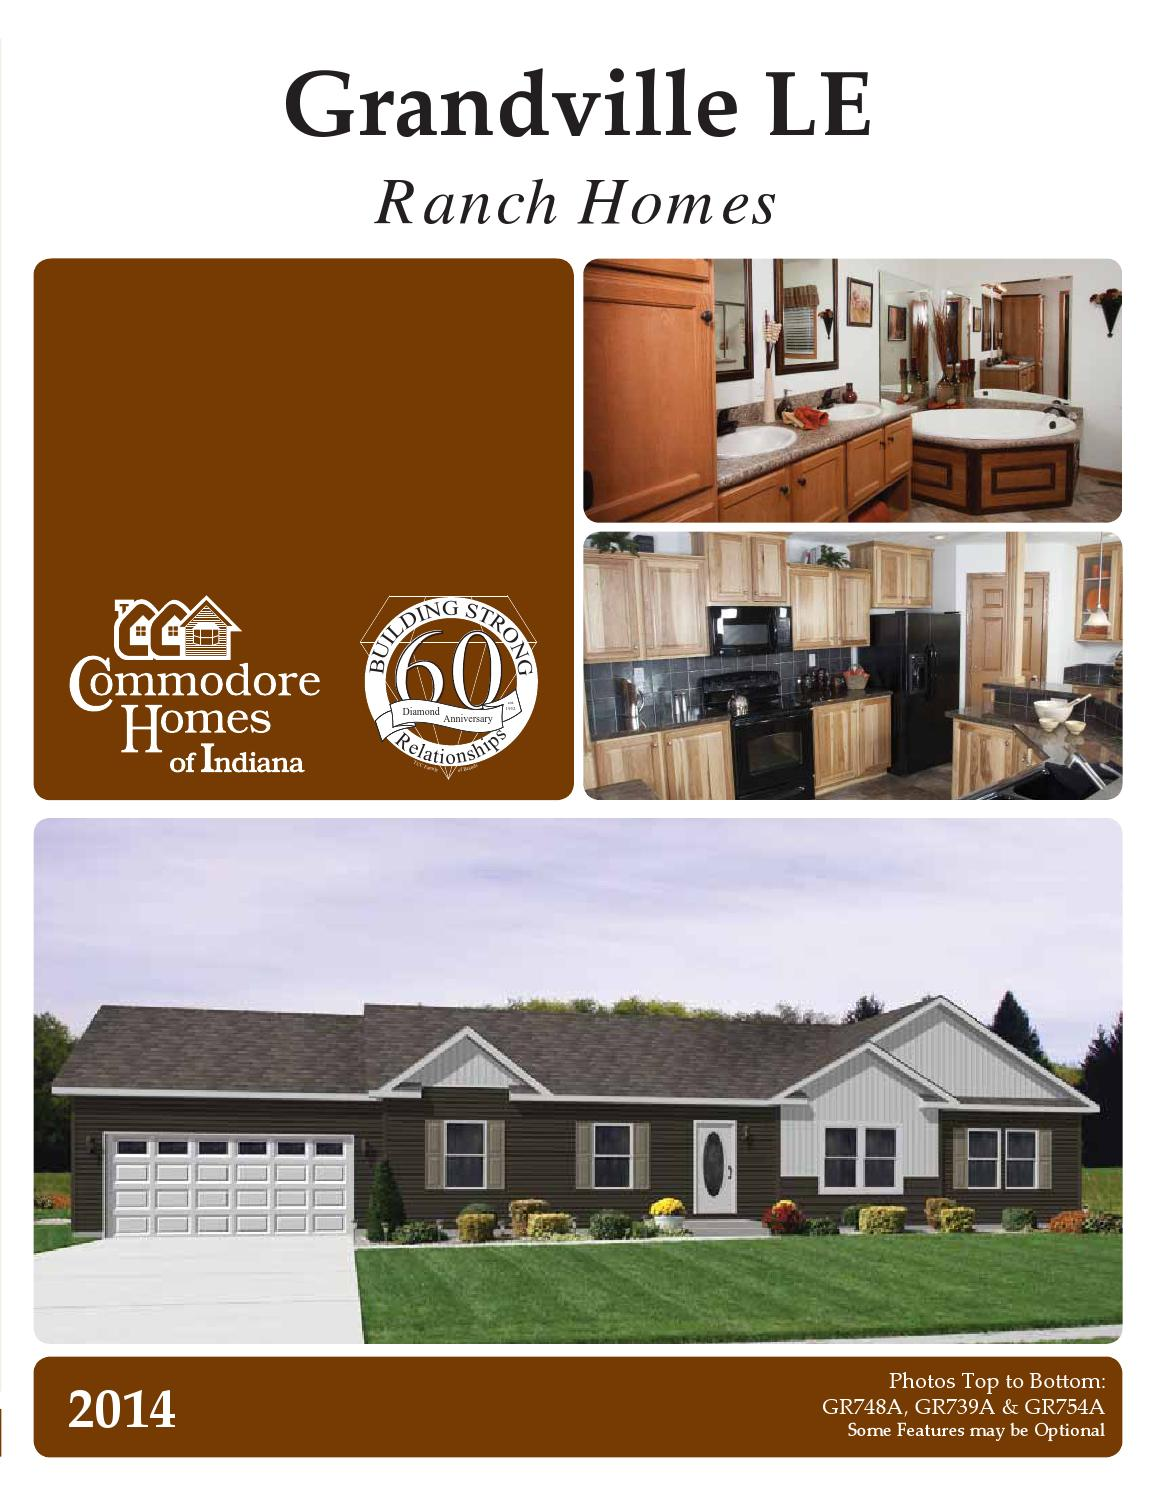 Commodore Homes Indiana Grandville Ranch The